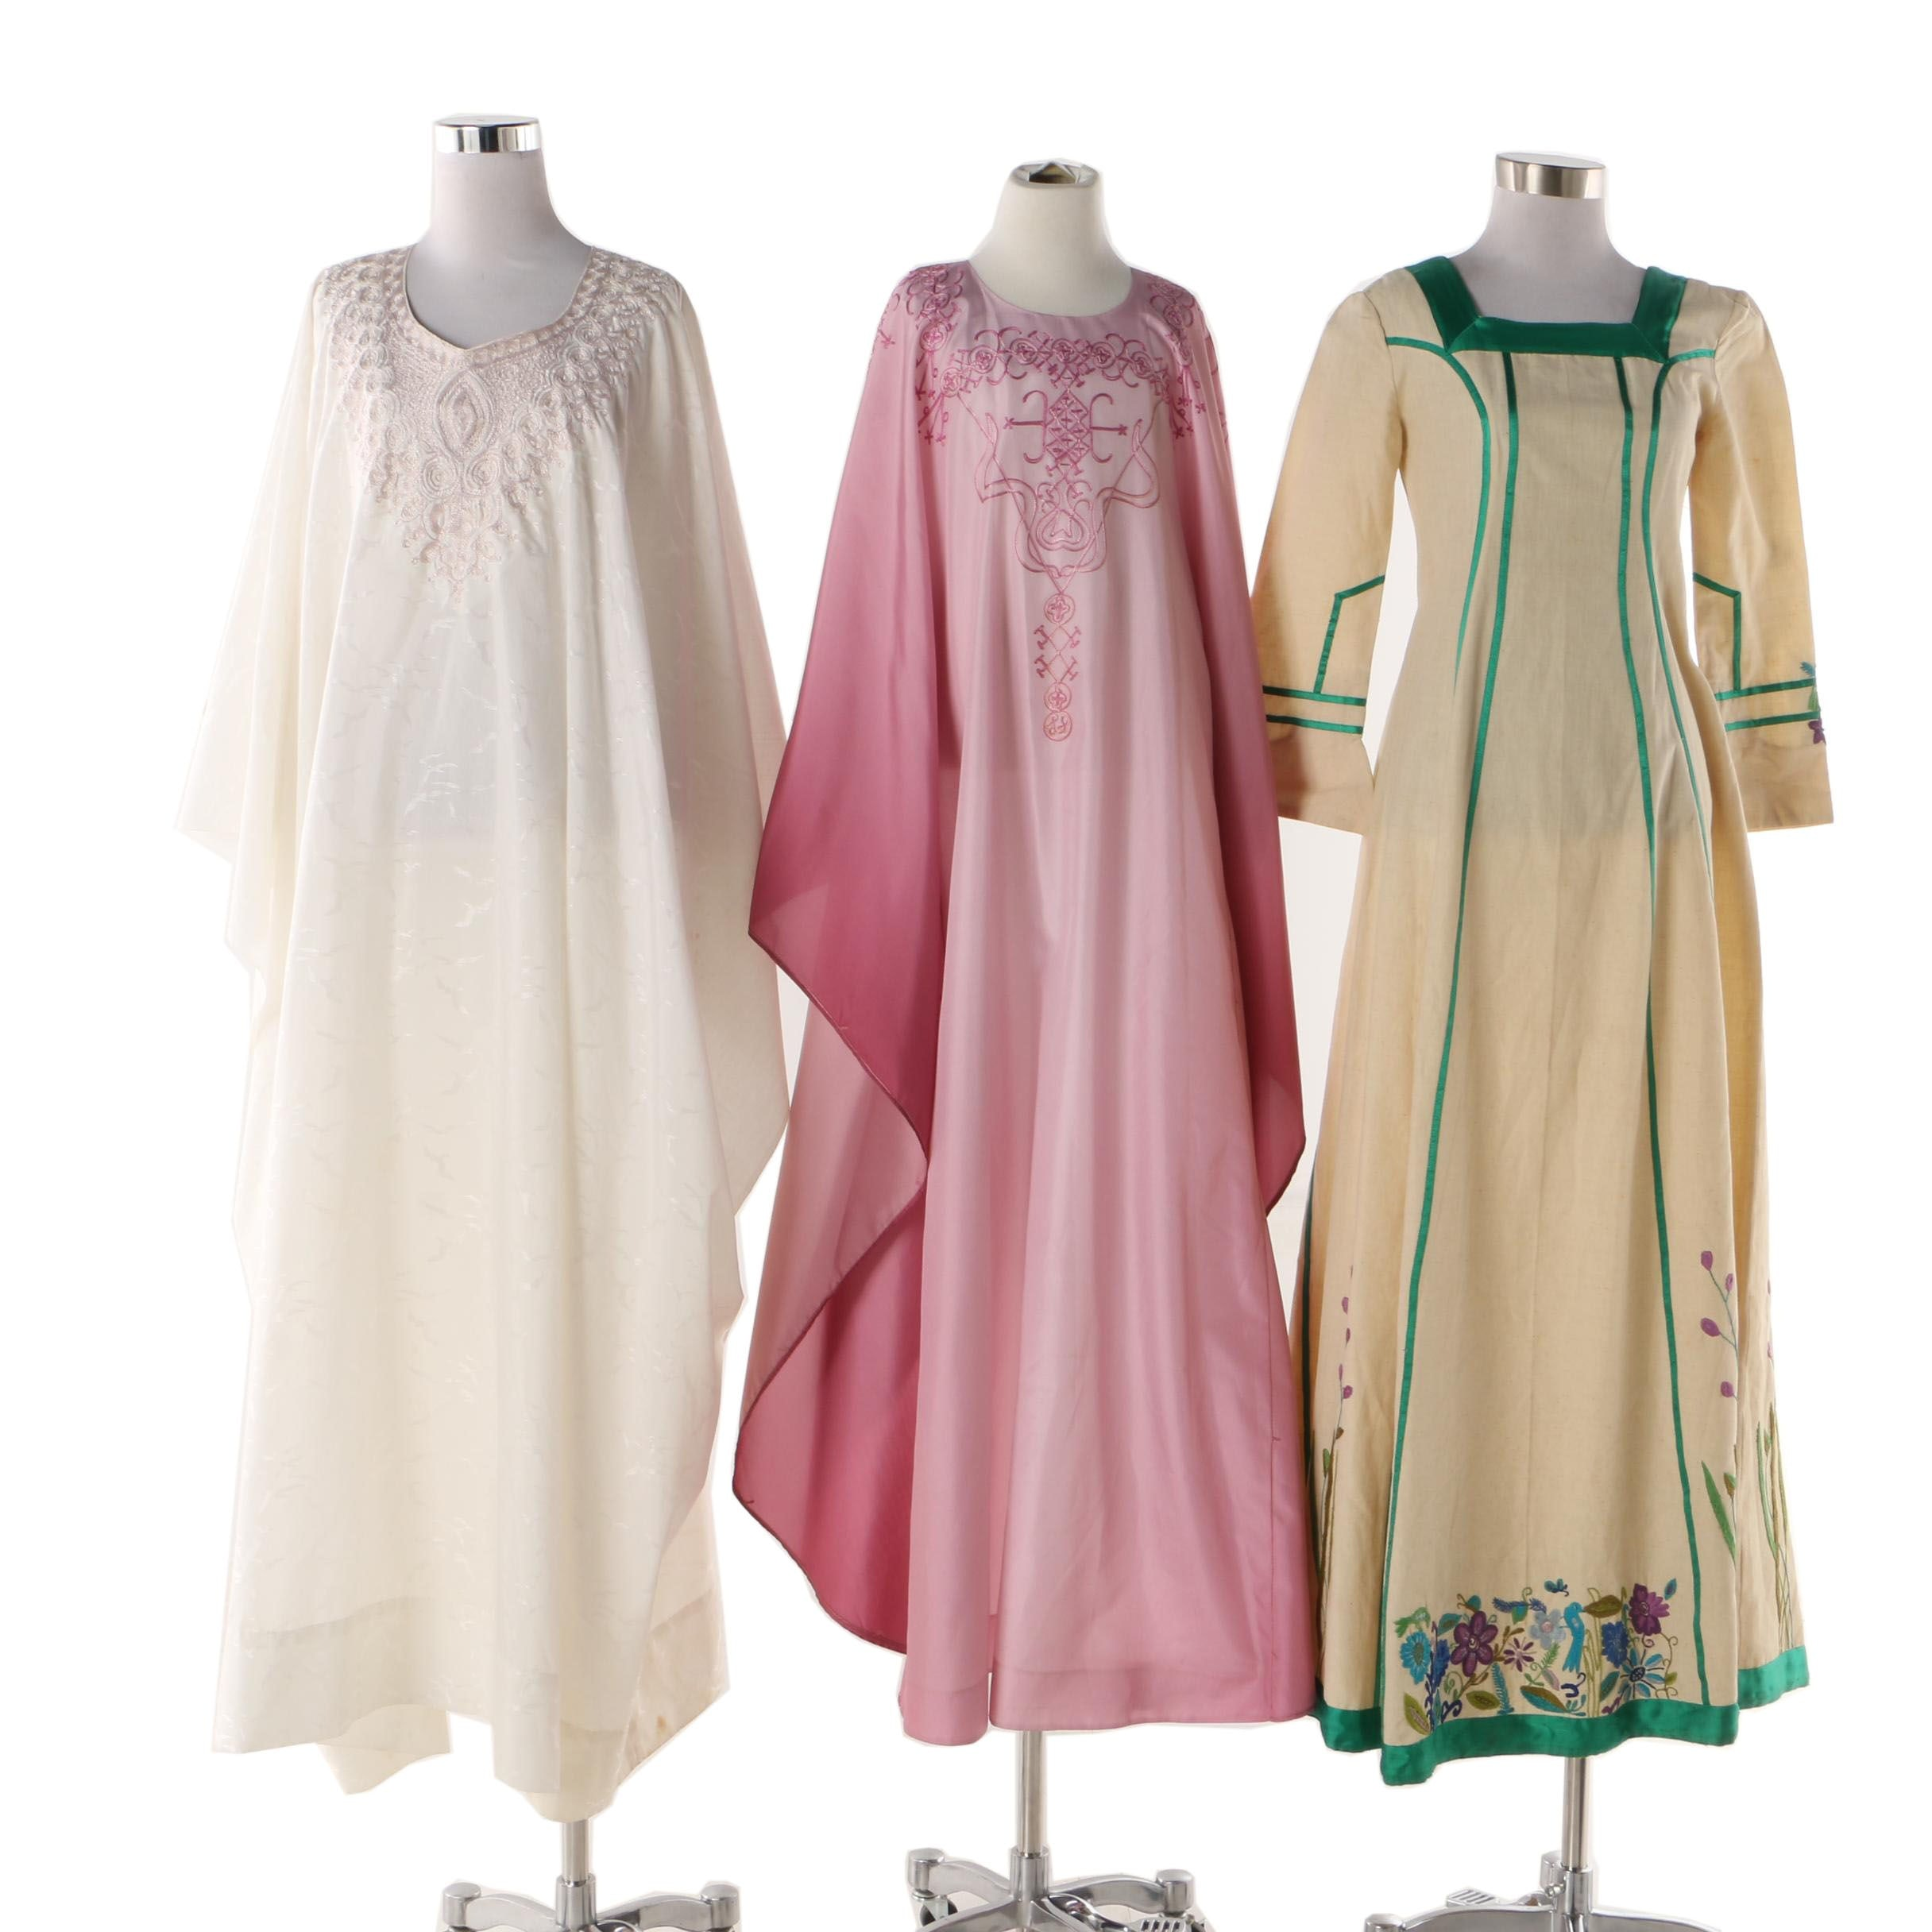 Women's Embroidered Caftans and Maxi Dress